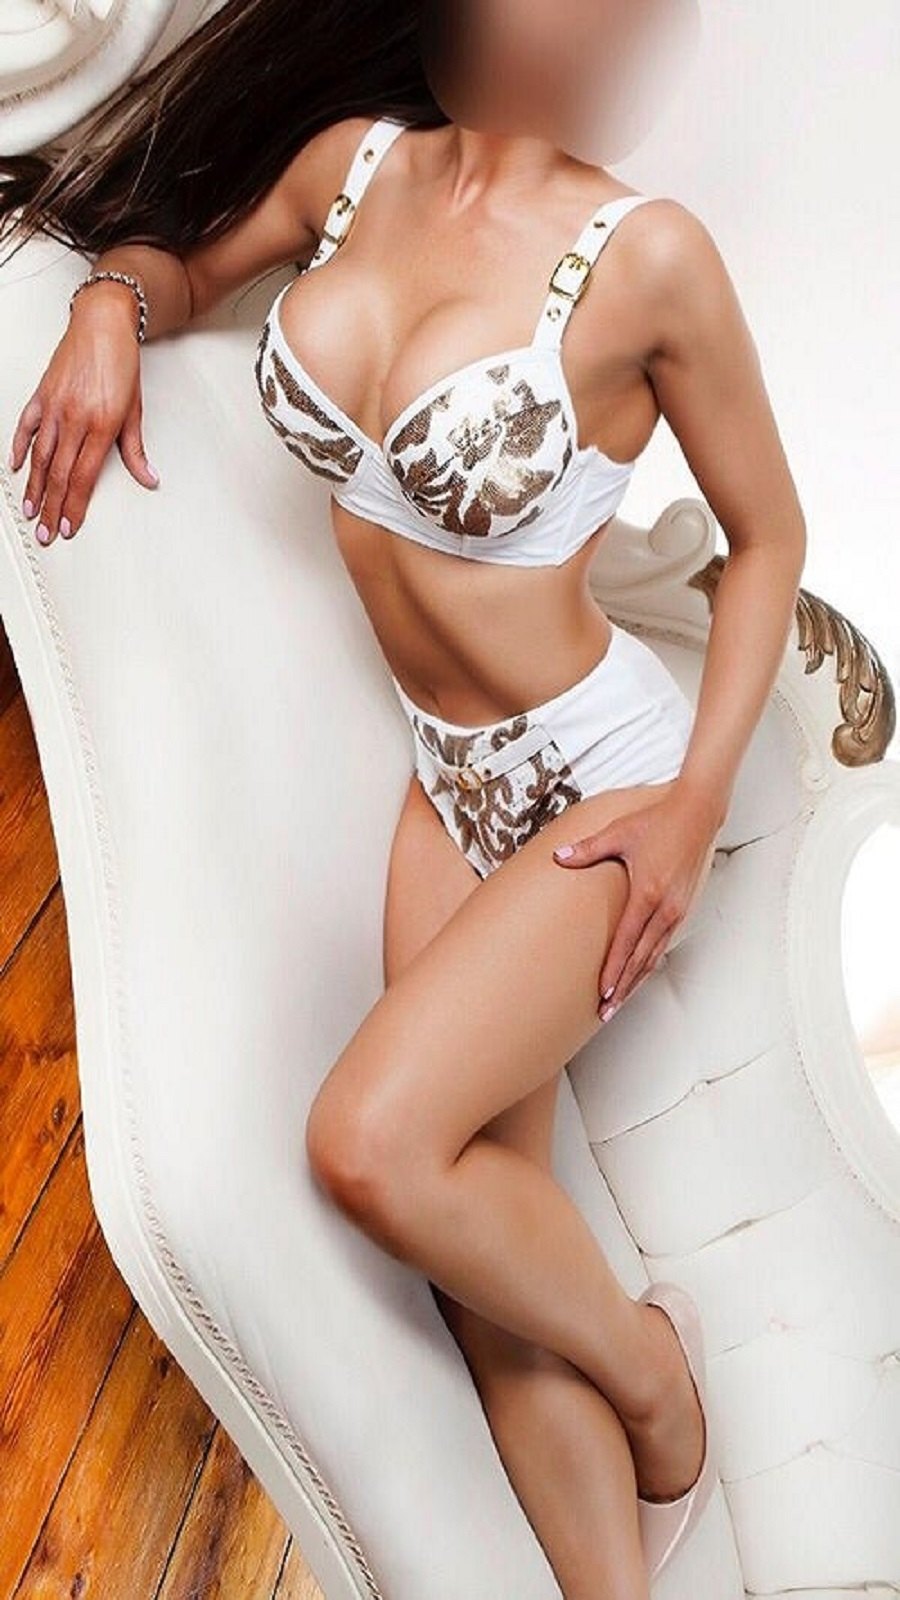 If you are looking for the perfect companion tonight give us a call on 07399733096 to book Sophia for the best night of your life.